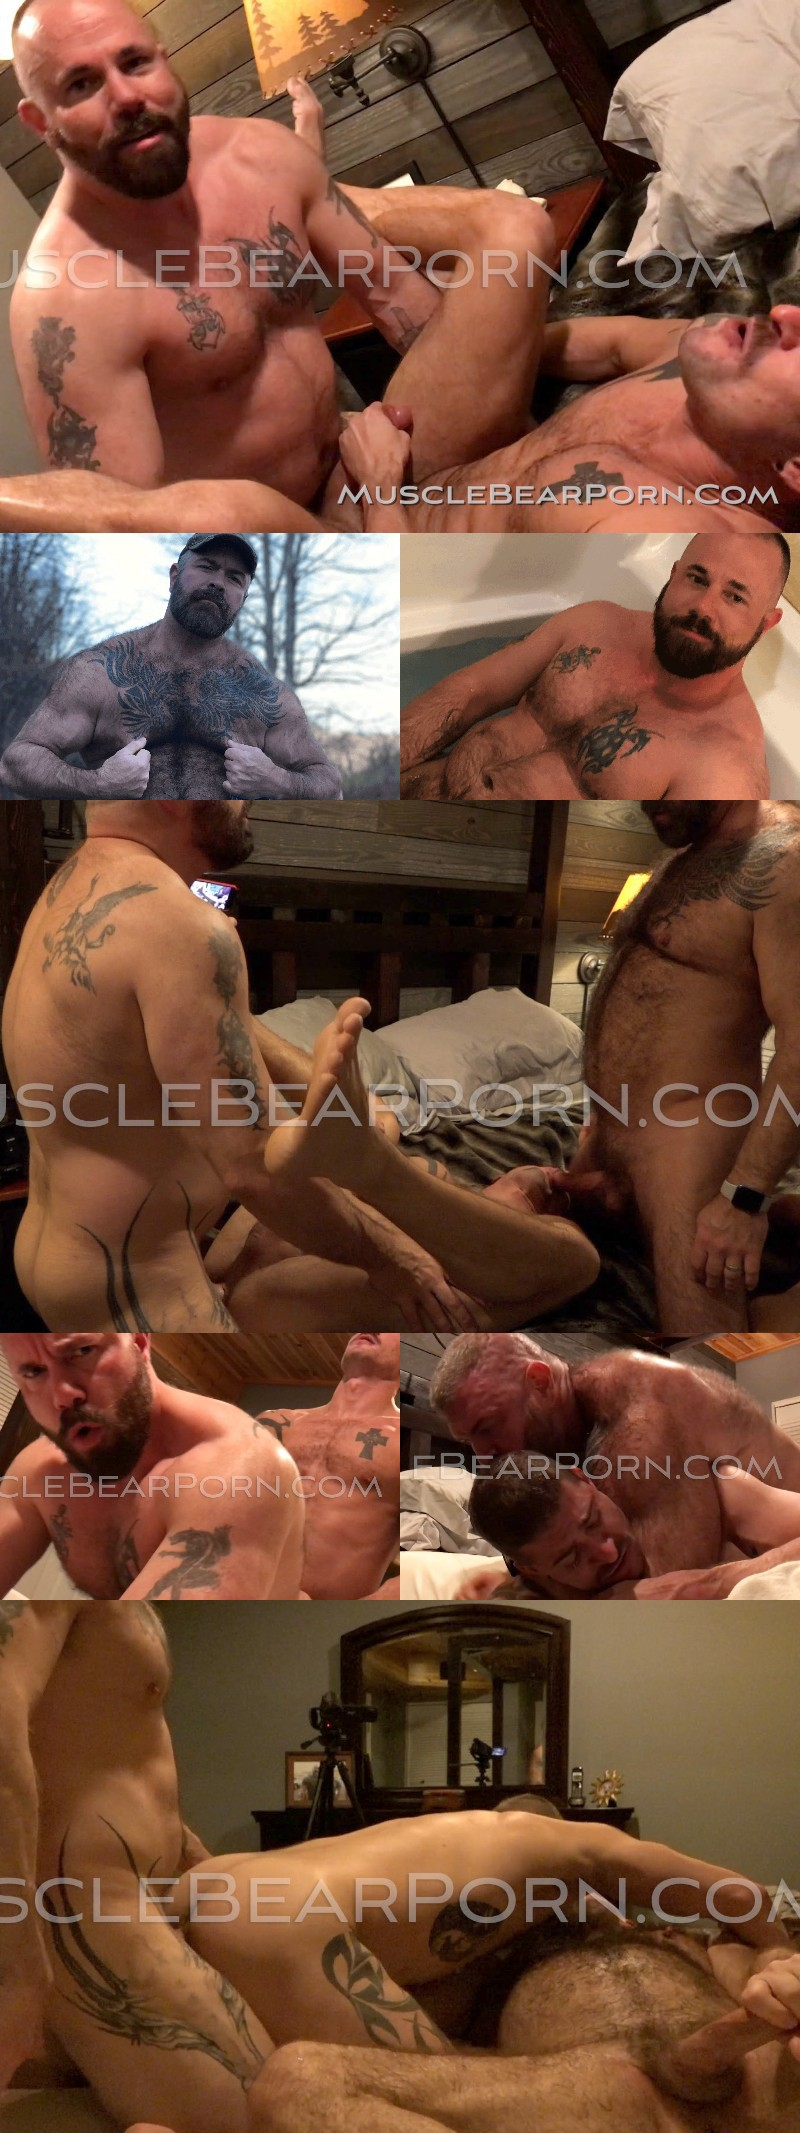 New Site: Muscle Bear Porn